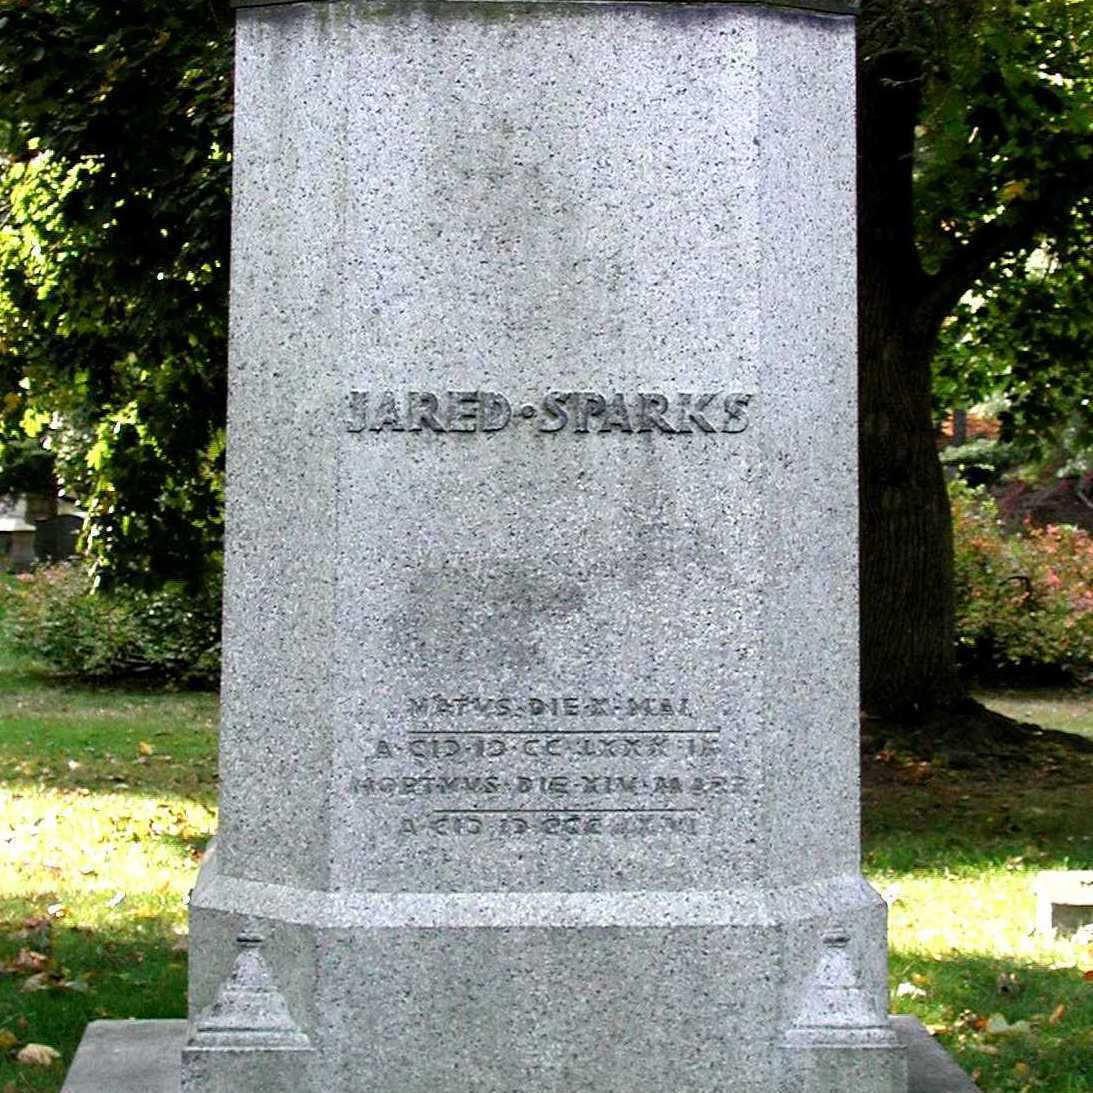 Square pedestal monument made of granite. There is some staining, but inscription remains completely legible.